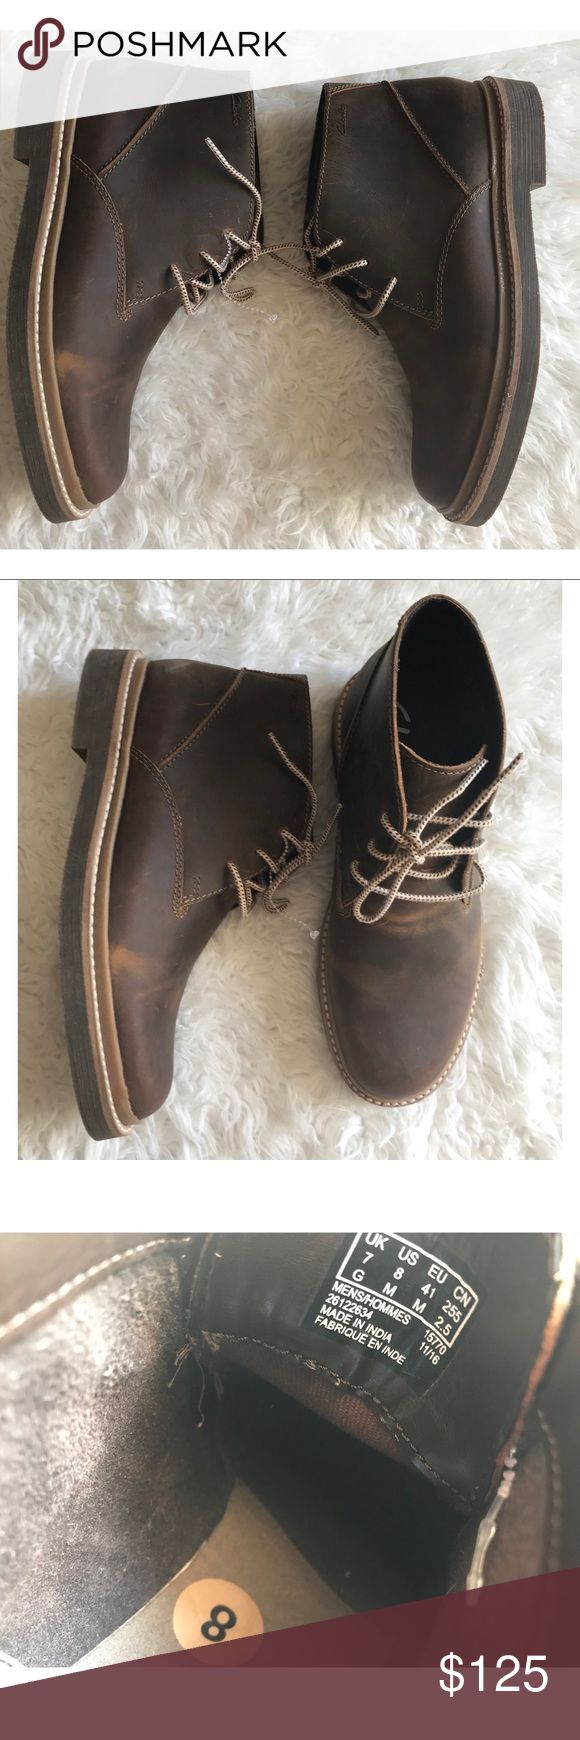 Clark's Bushacre ridge beeswax leather chukka boot Men's. New without box! Please make all reasonable offers through offer option only. Clarks Shoes Chukka Boots